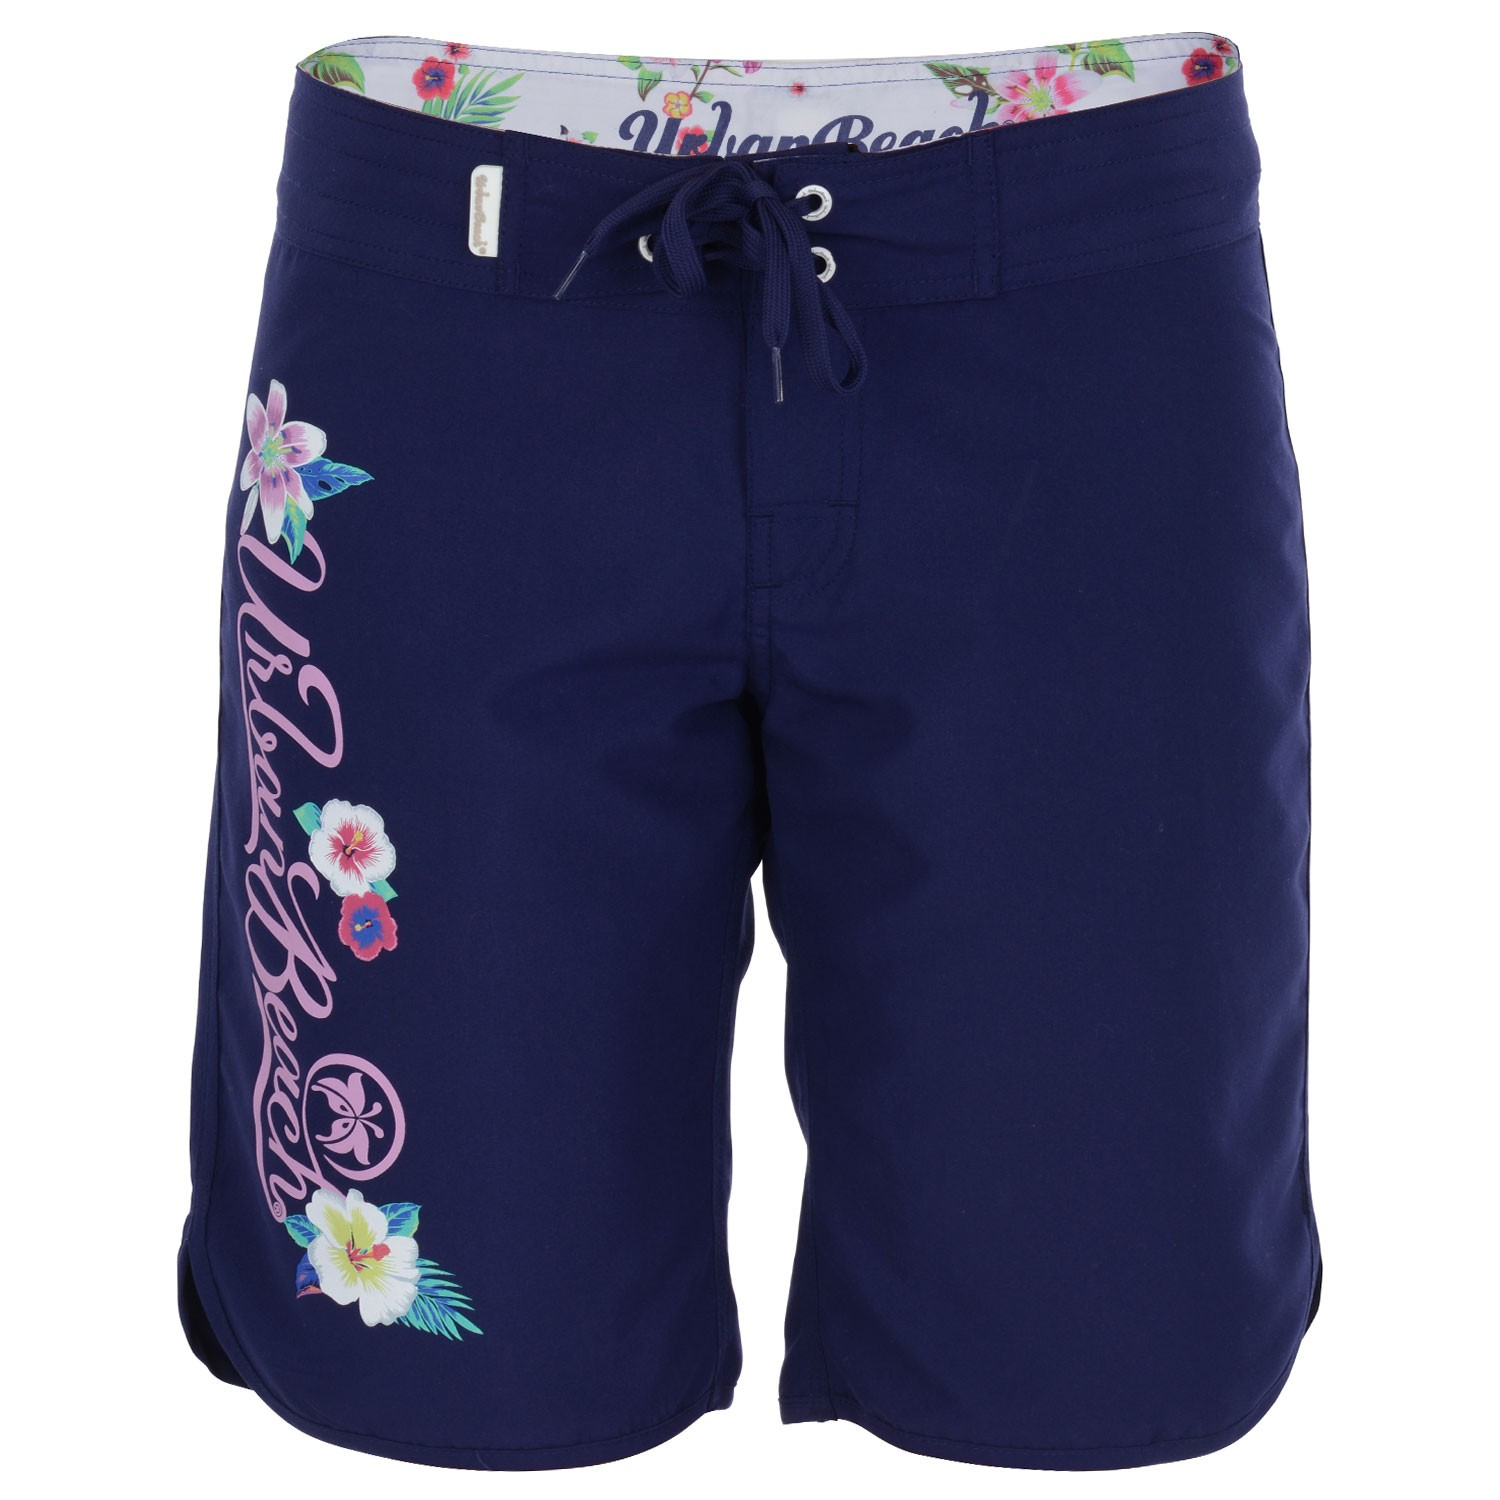 Womens Navy Long Board Shorts Wollacombe- Free Delivery Over U00a320 - Urban Beach